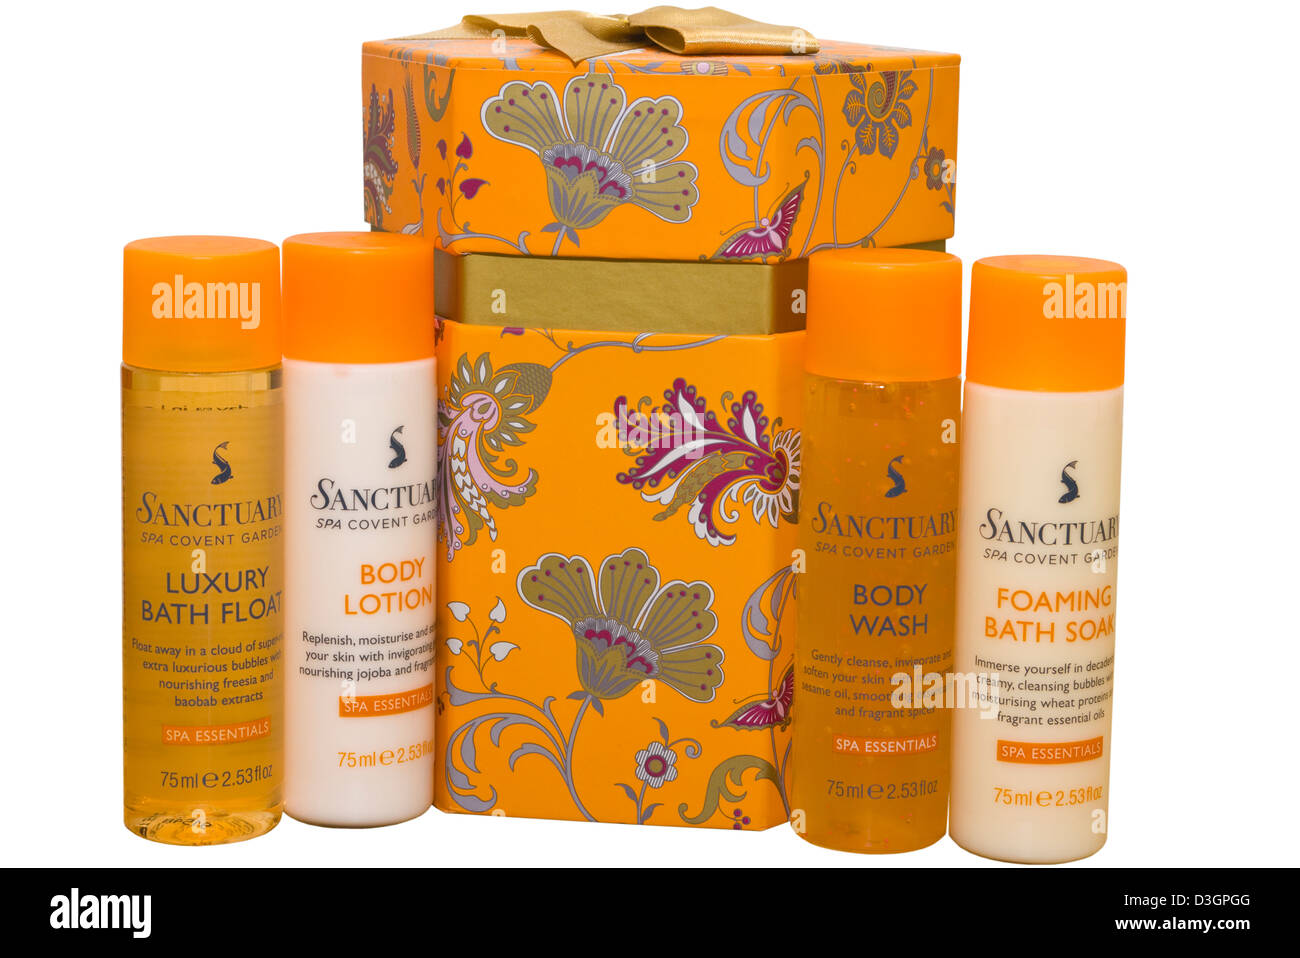 Cut Out Spa Stock Photos Images Alamy Dat Edwina Orange Slip On Sanctuary Bath Products Gift Set Image